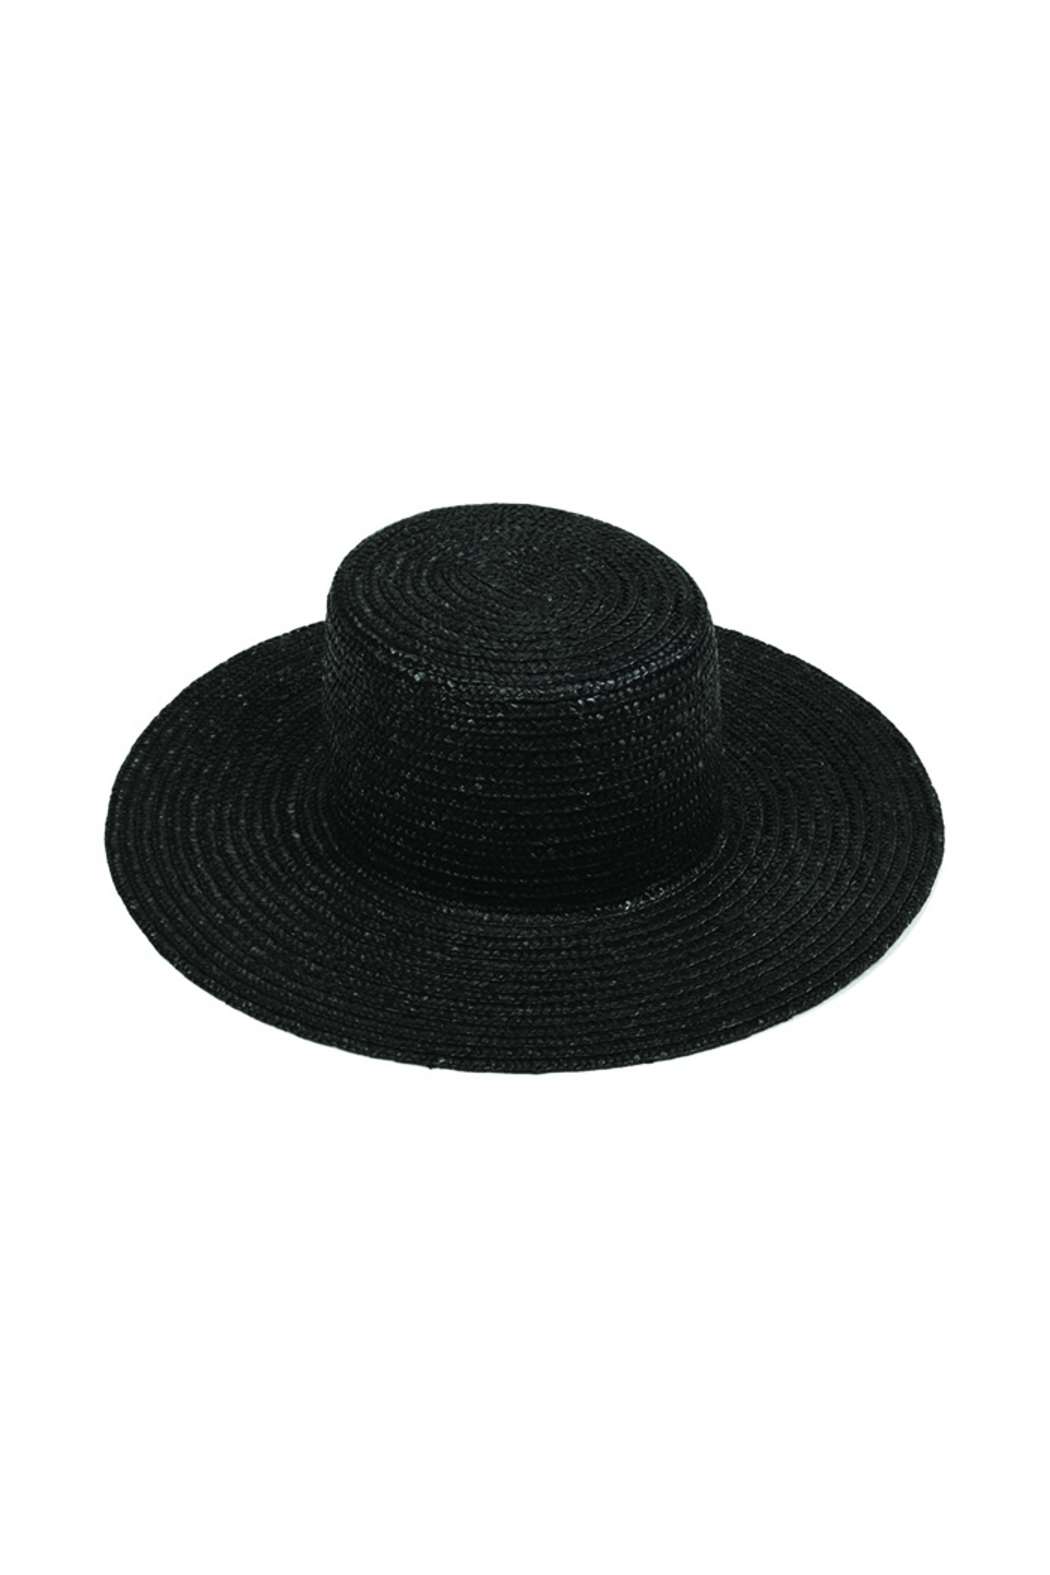 df3d2777f52 Lack of colour valley black hat from california brigitte stone jpg  1050x1575 Hat shop valley